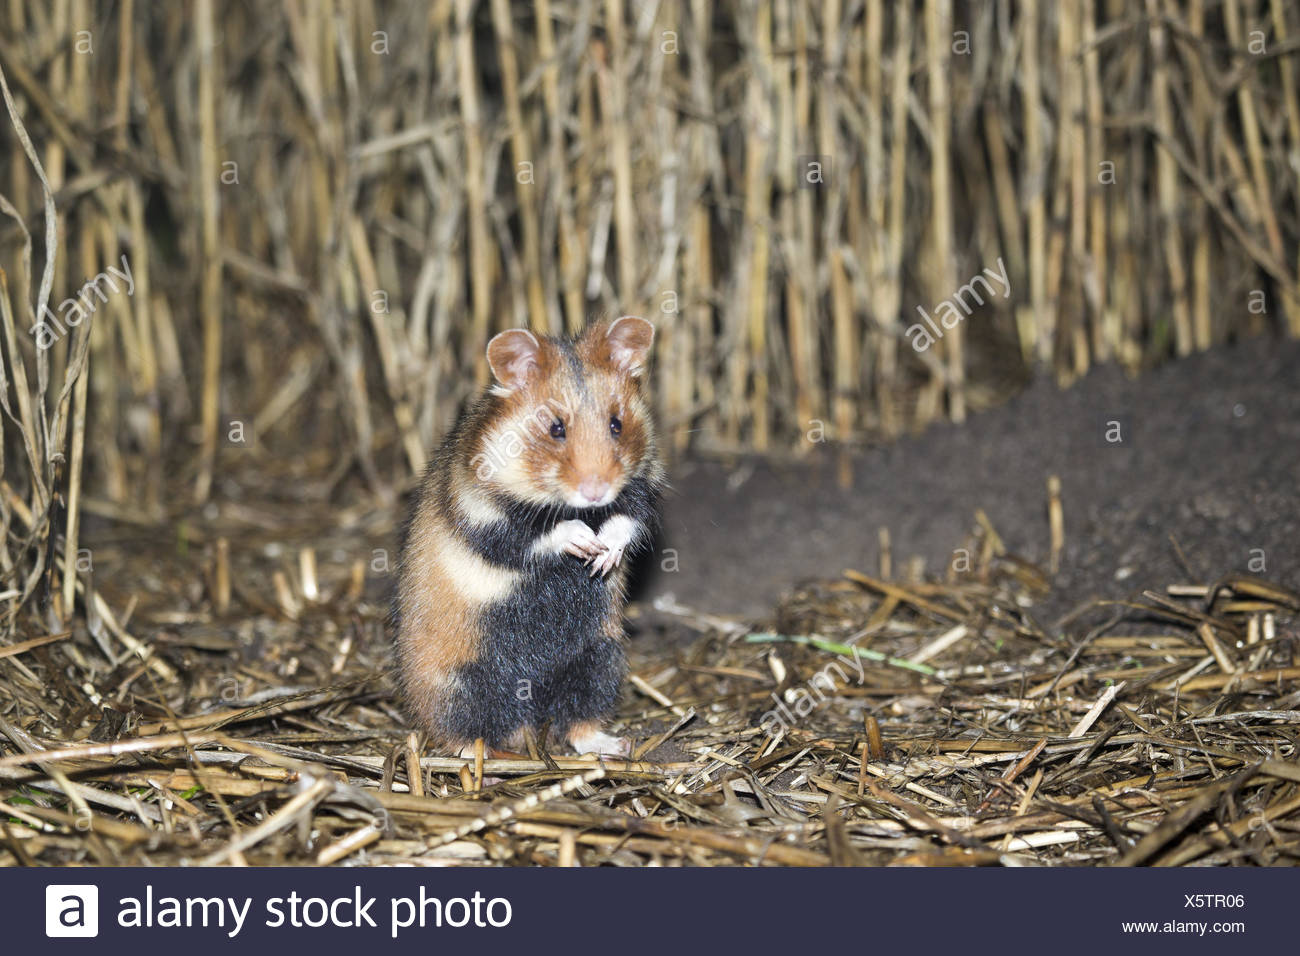 safeguarding common hamster - Stock Image